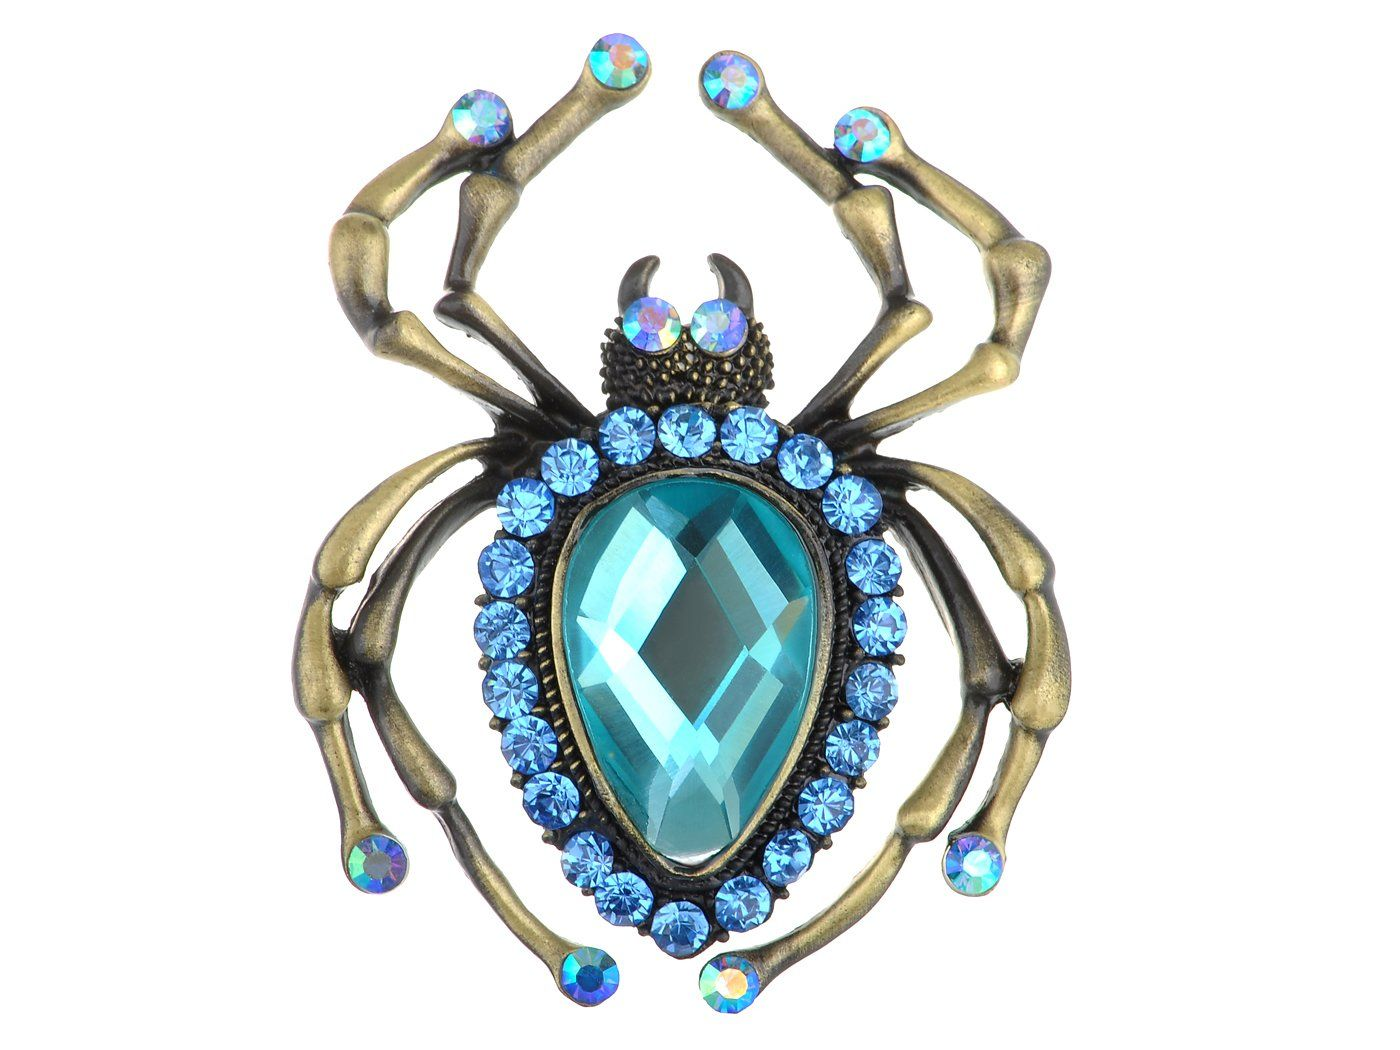 Photo of Antique Big Teardrop Sapphire Blue Spider Insect Brooch Pin – Gold&Blue